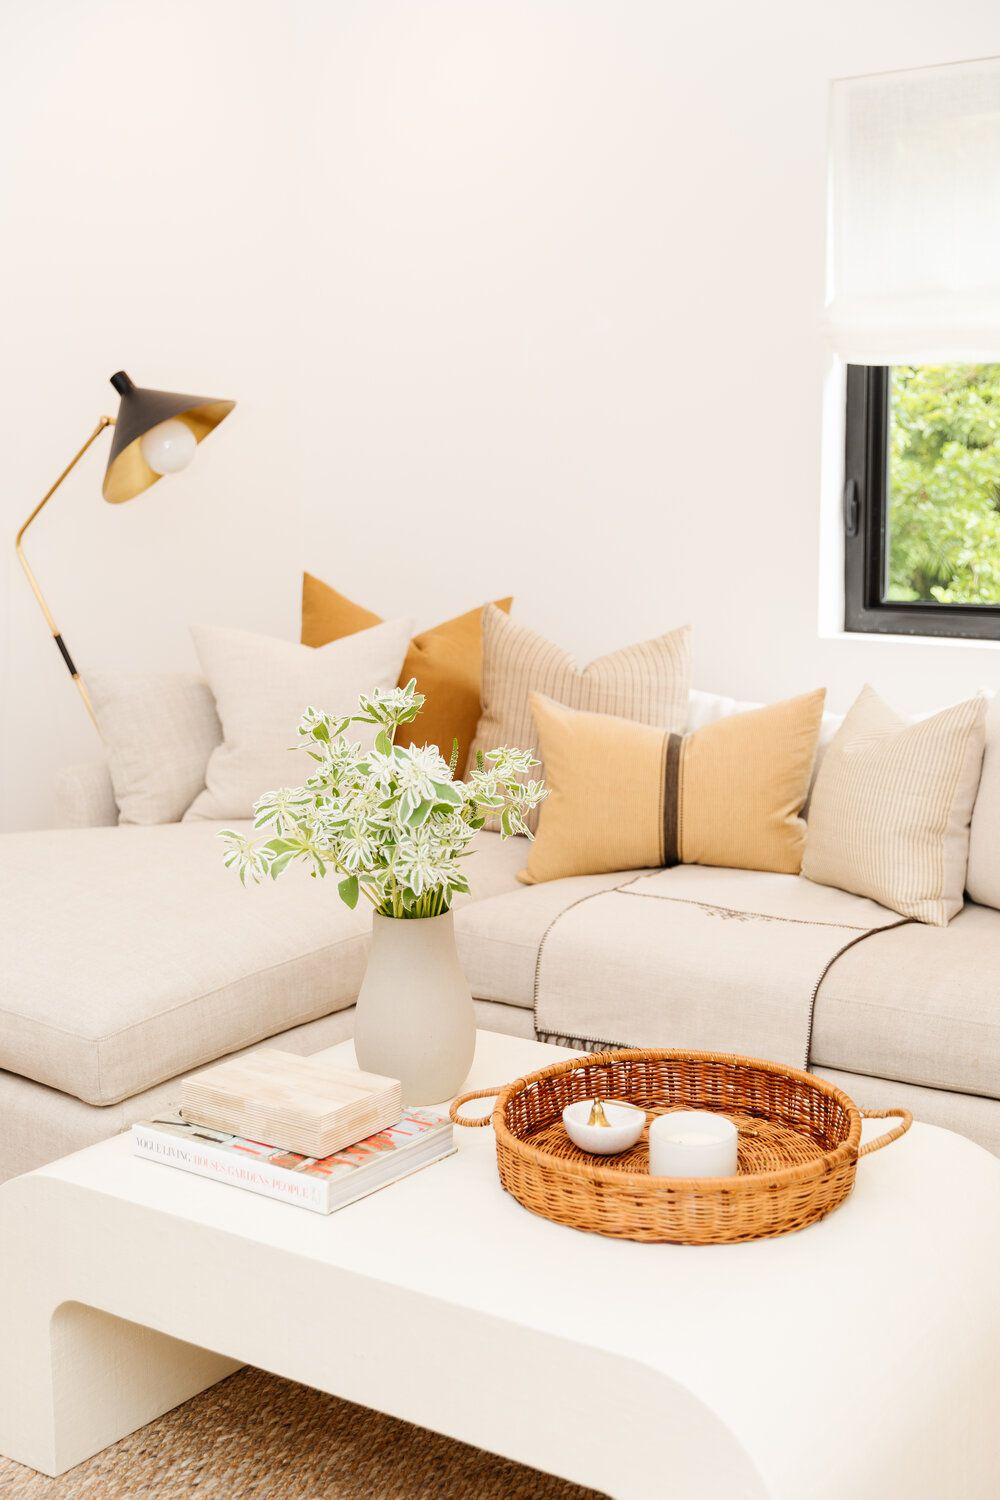 Light beige couch with orange pillows.